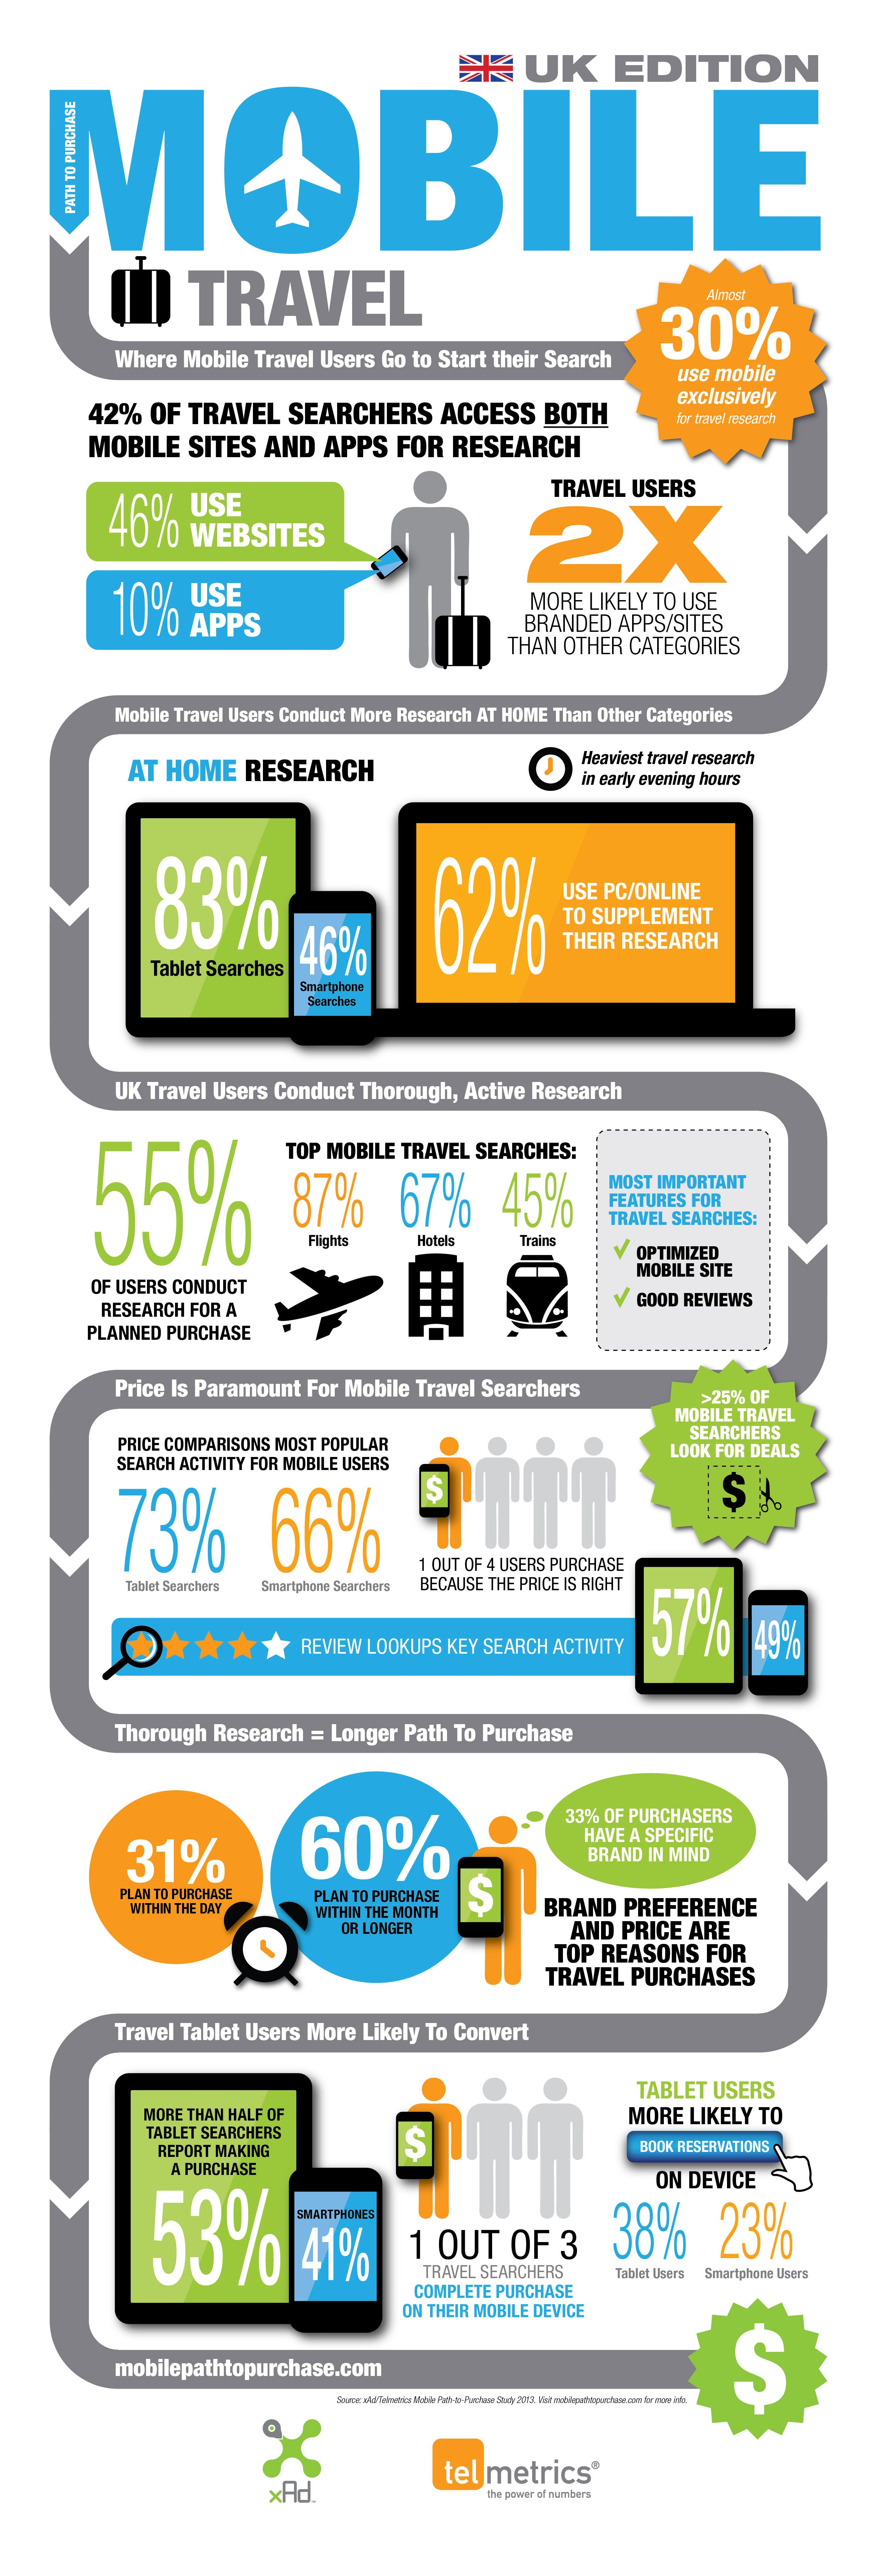 Price is Paramount to UK Mobile Travel Searchers